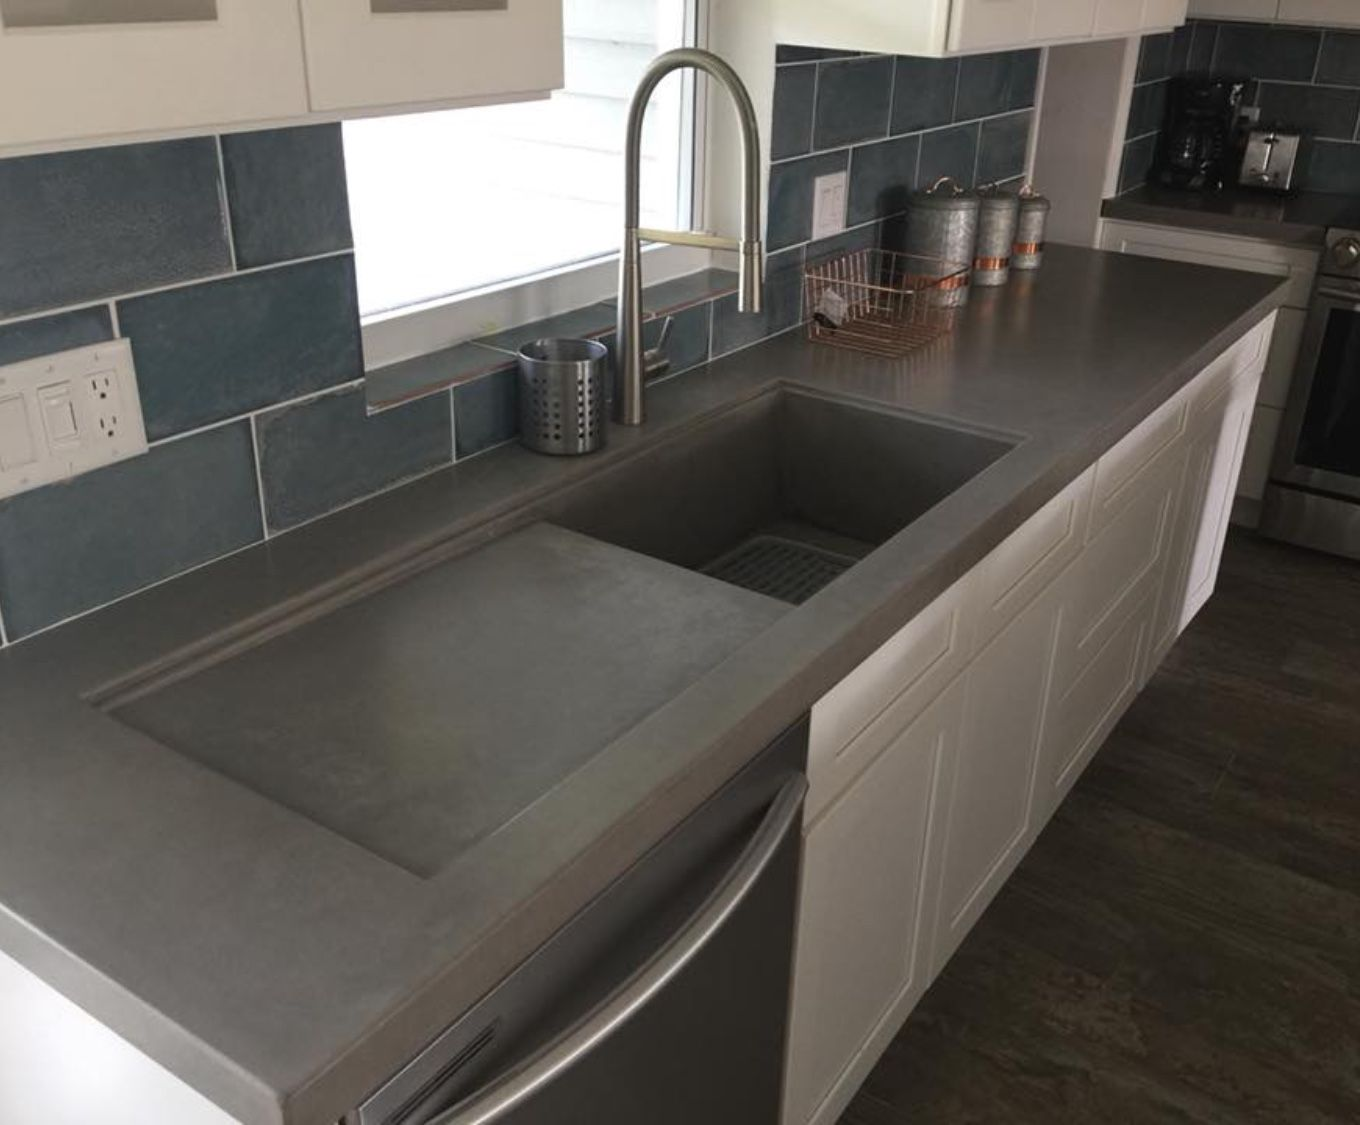 Concrete Countertop With Integrated Sink And Drainboard Www Kingsmenconcrete